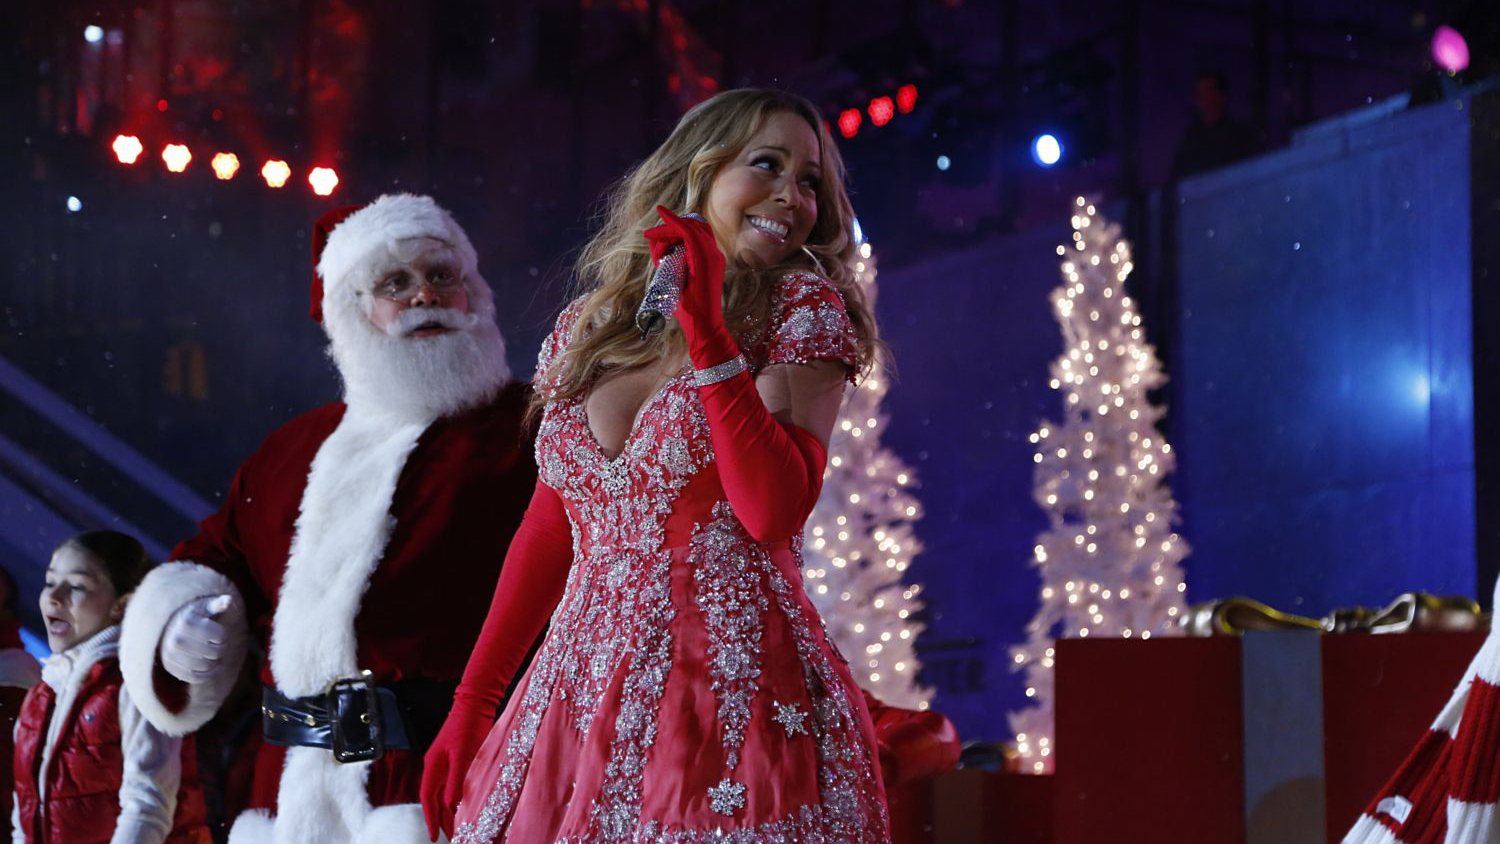 Mariah Carey - Christmas at Rockefeller Center, New York, by MariahJournal.com 034 (1500x844)